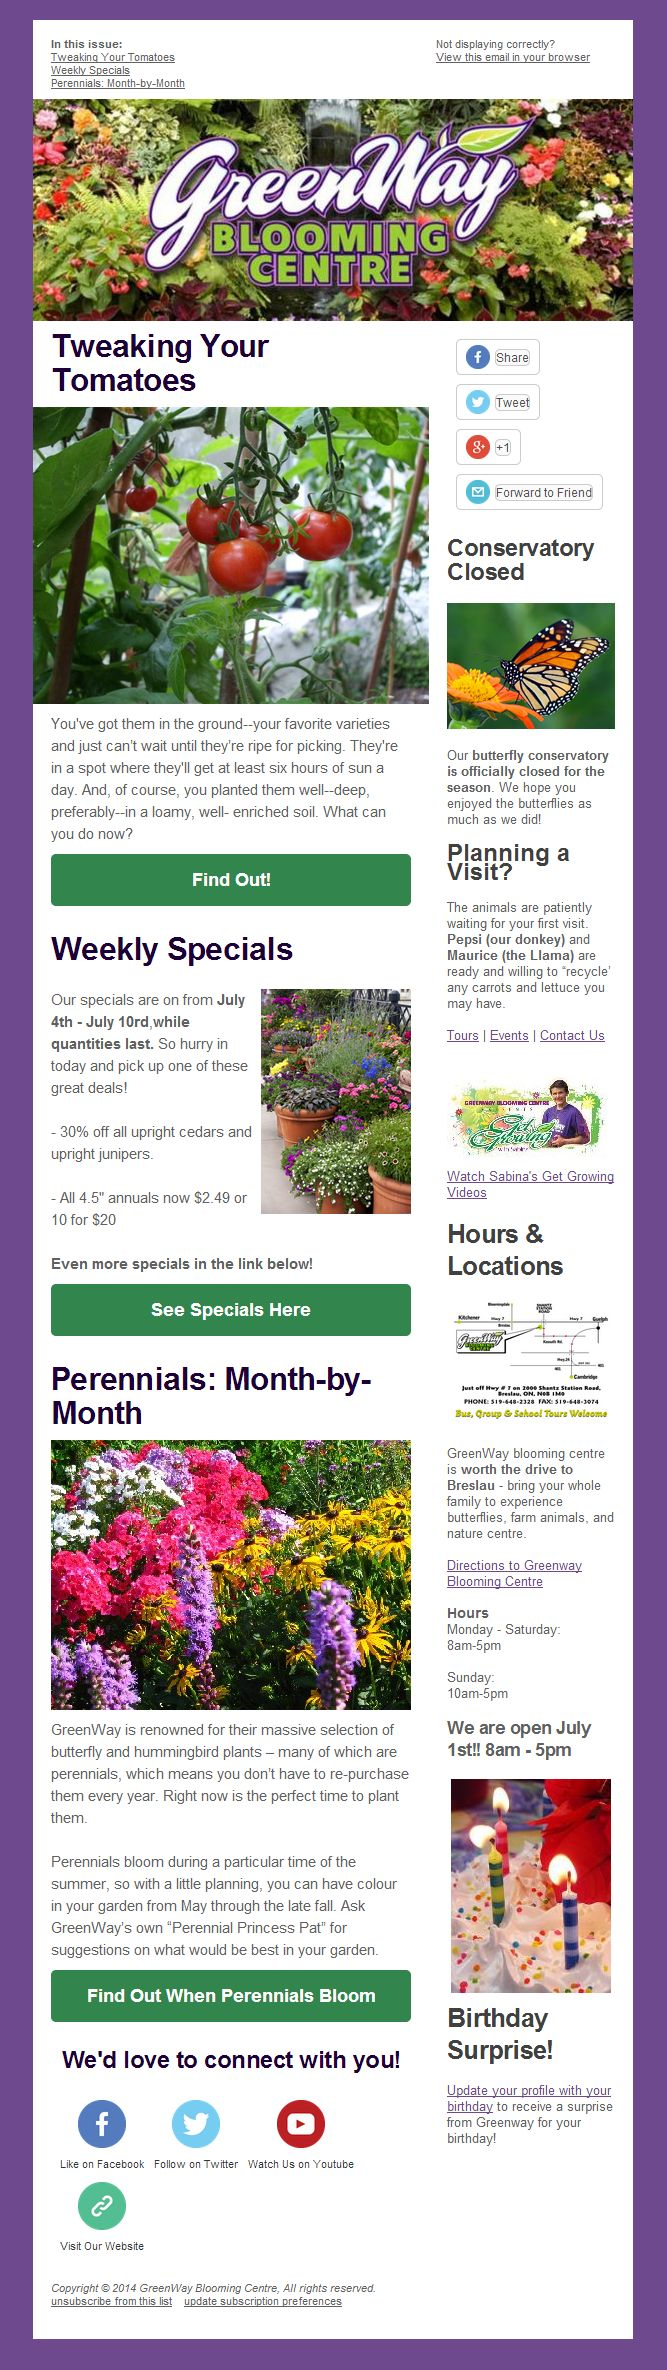 Garden Centre Kitchener Subscribe To Greenway Blooming Centres Email Newslettergreenway